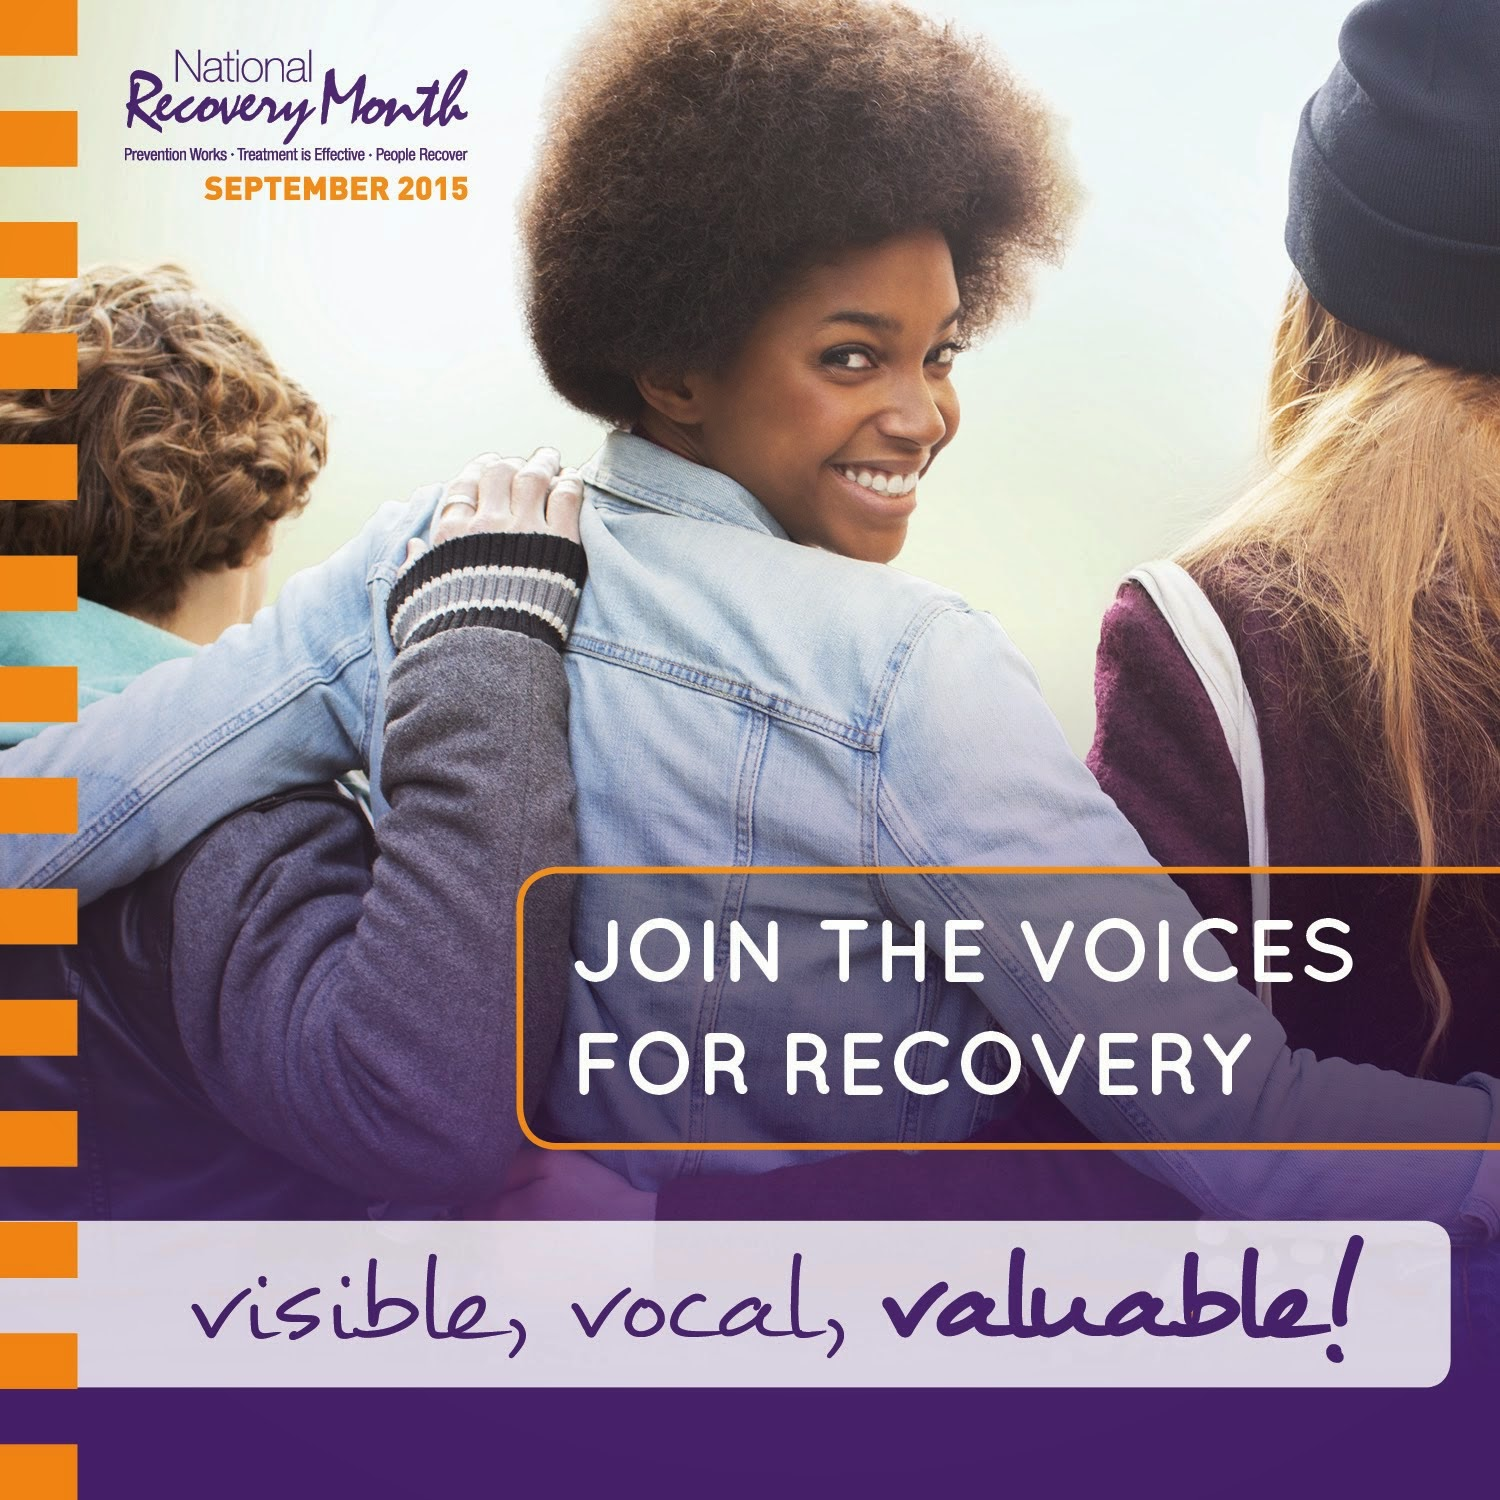 Recovery Month 2015!